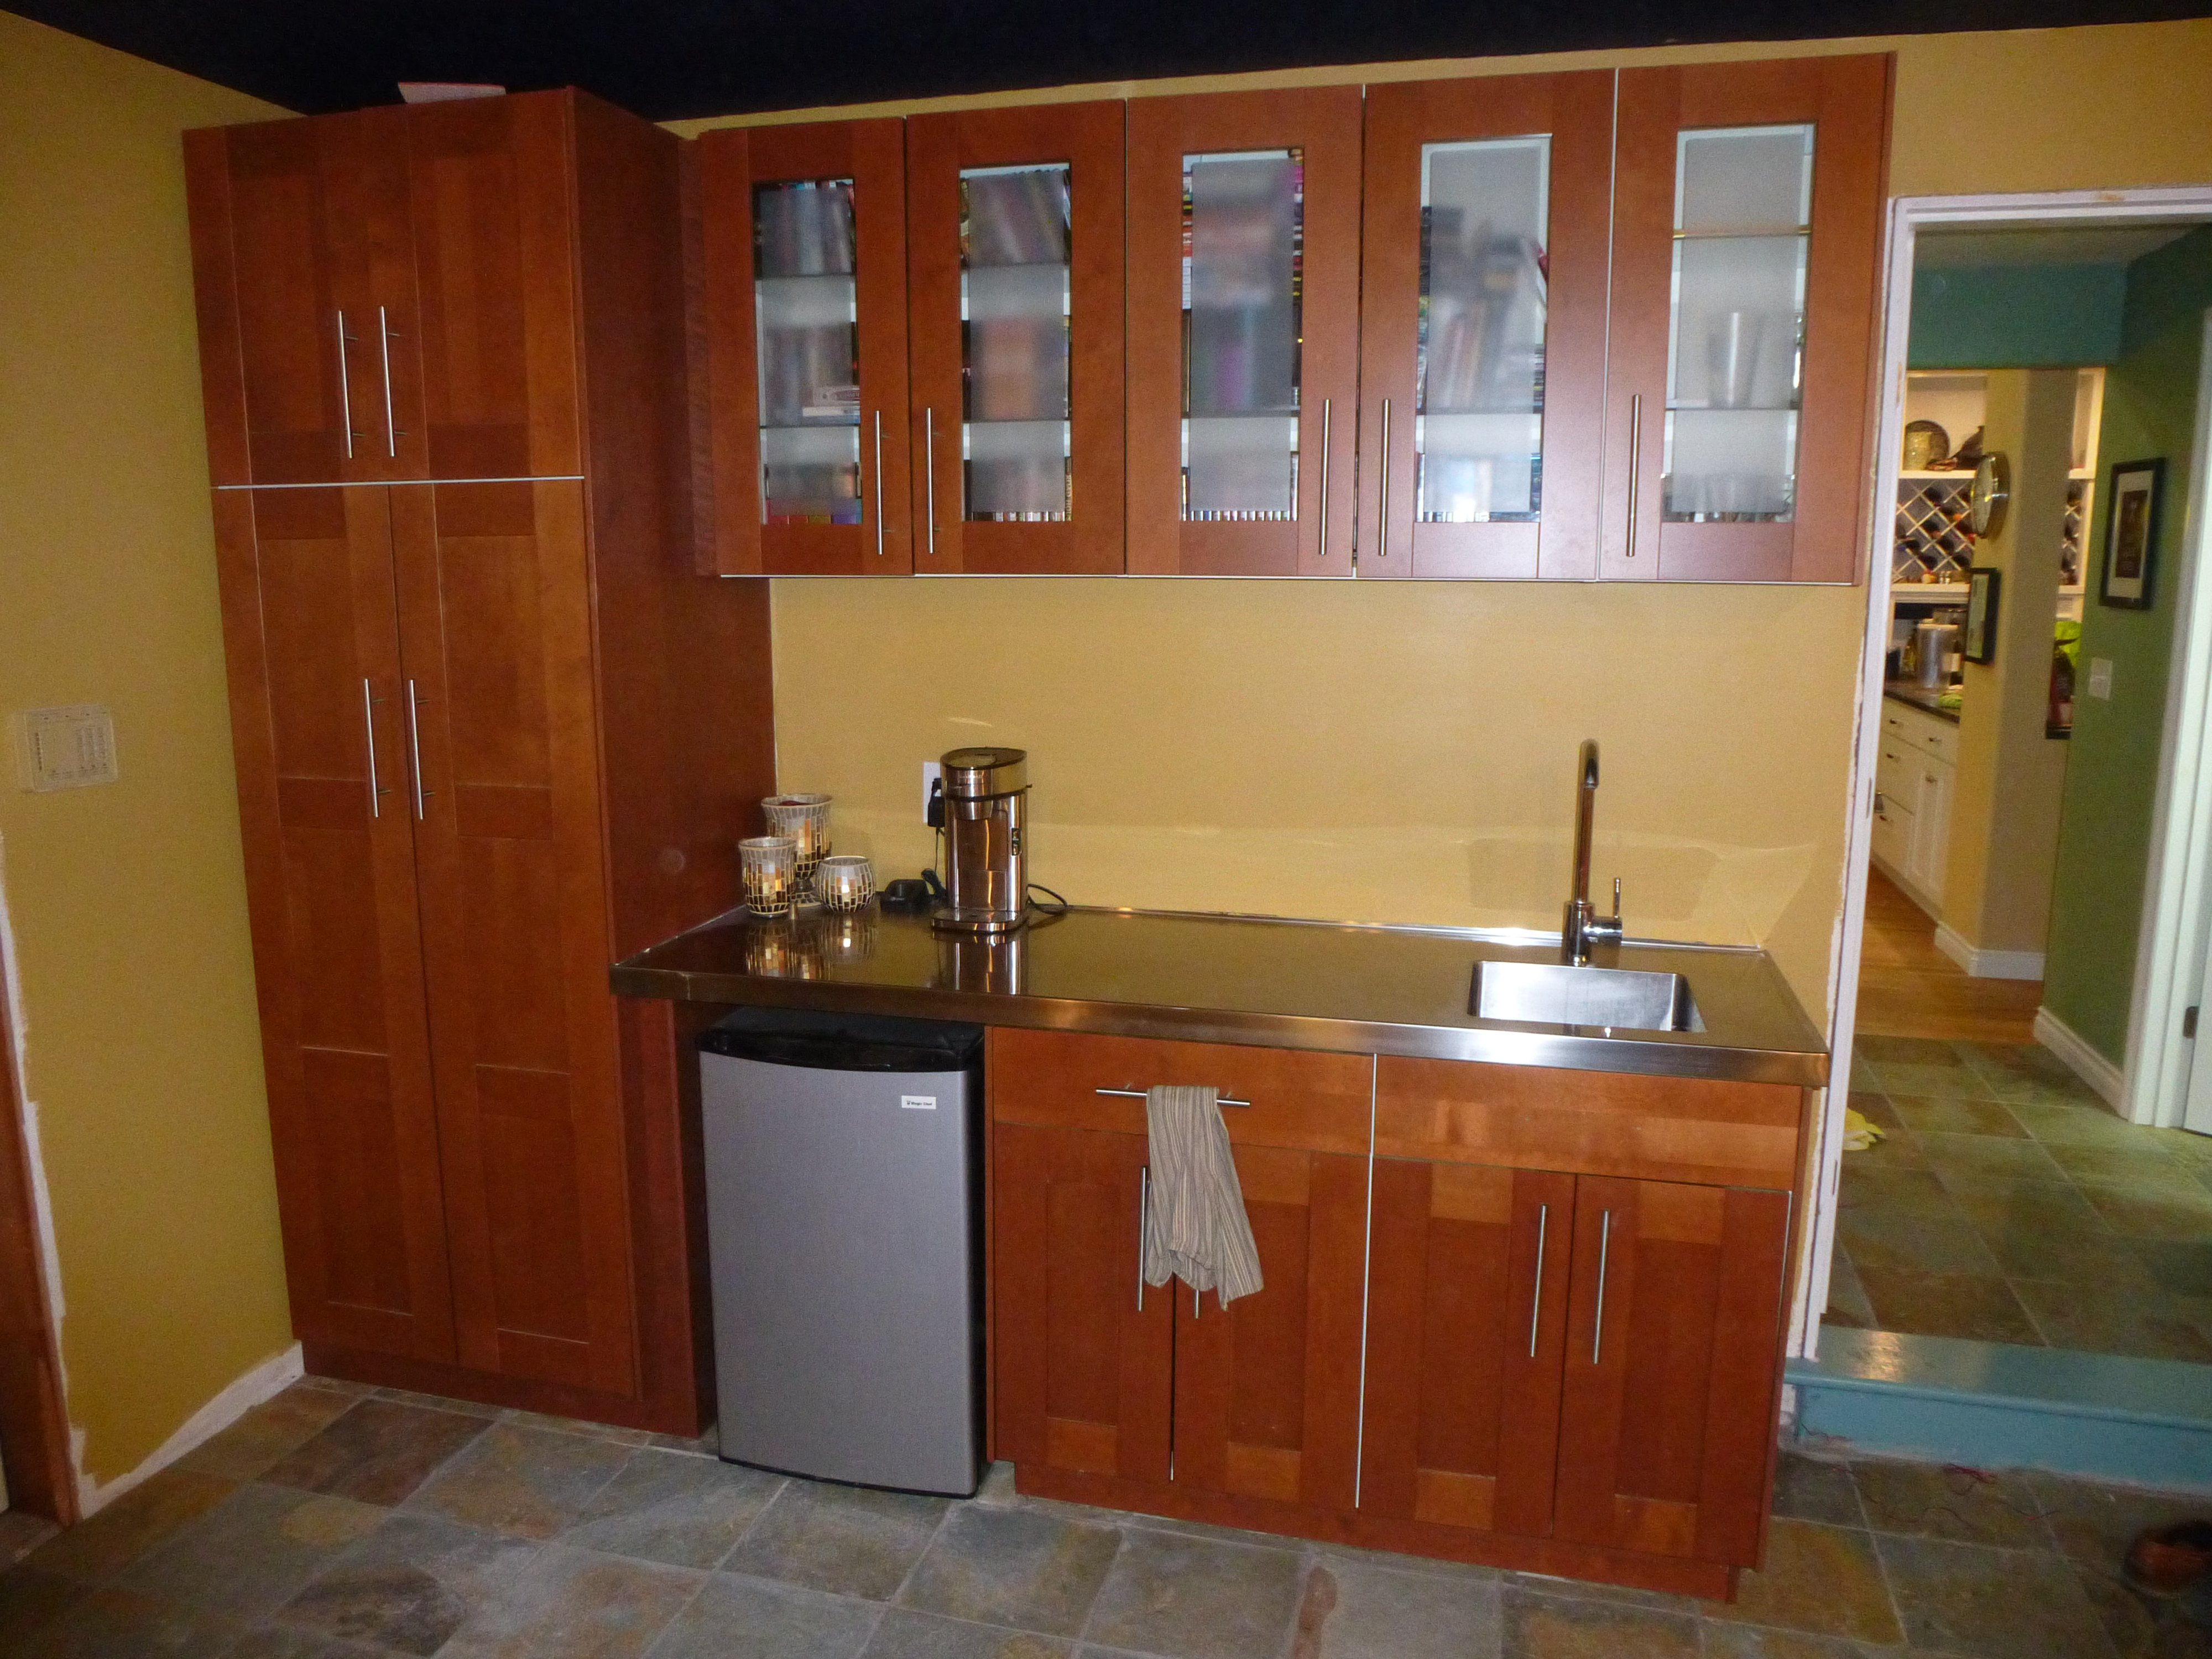 DIY Snack Bar With IKEA Kitchen Cabinets!   AVS Forum | Home Theater  Discussions And Reviews